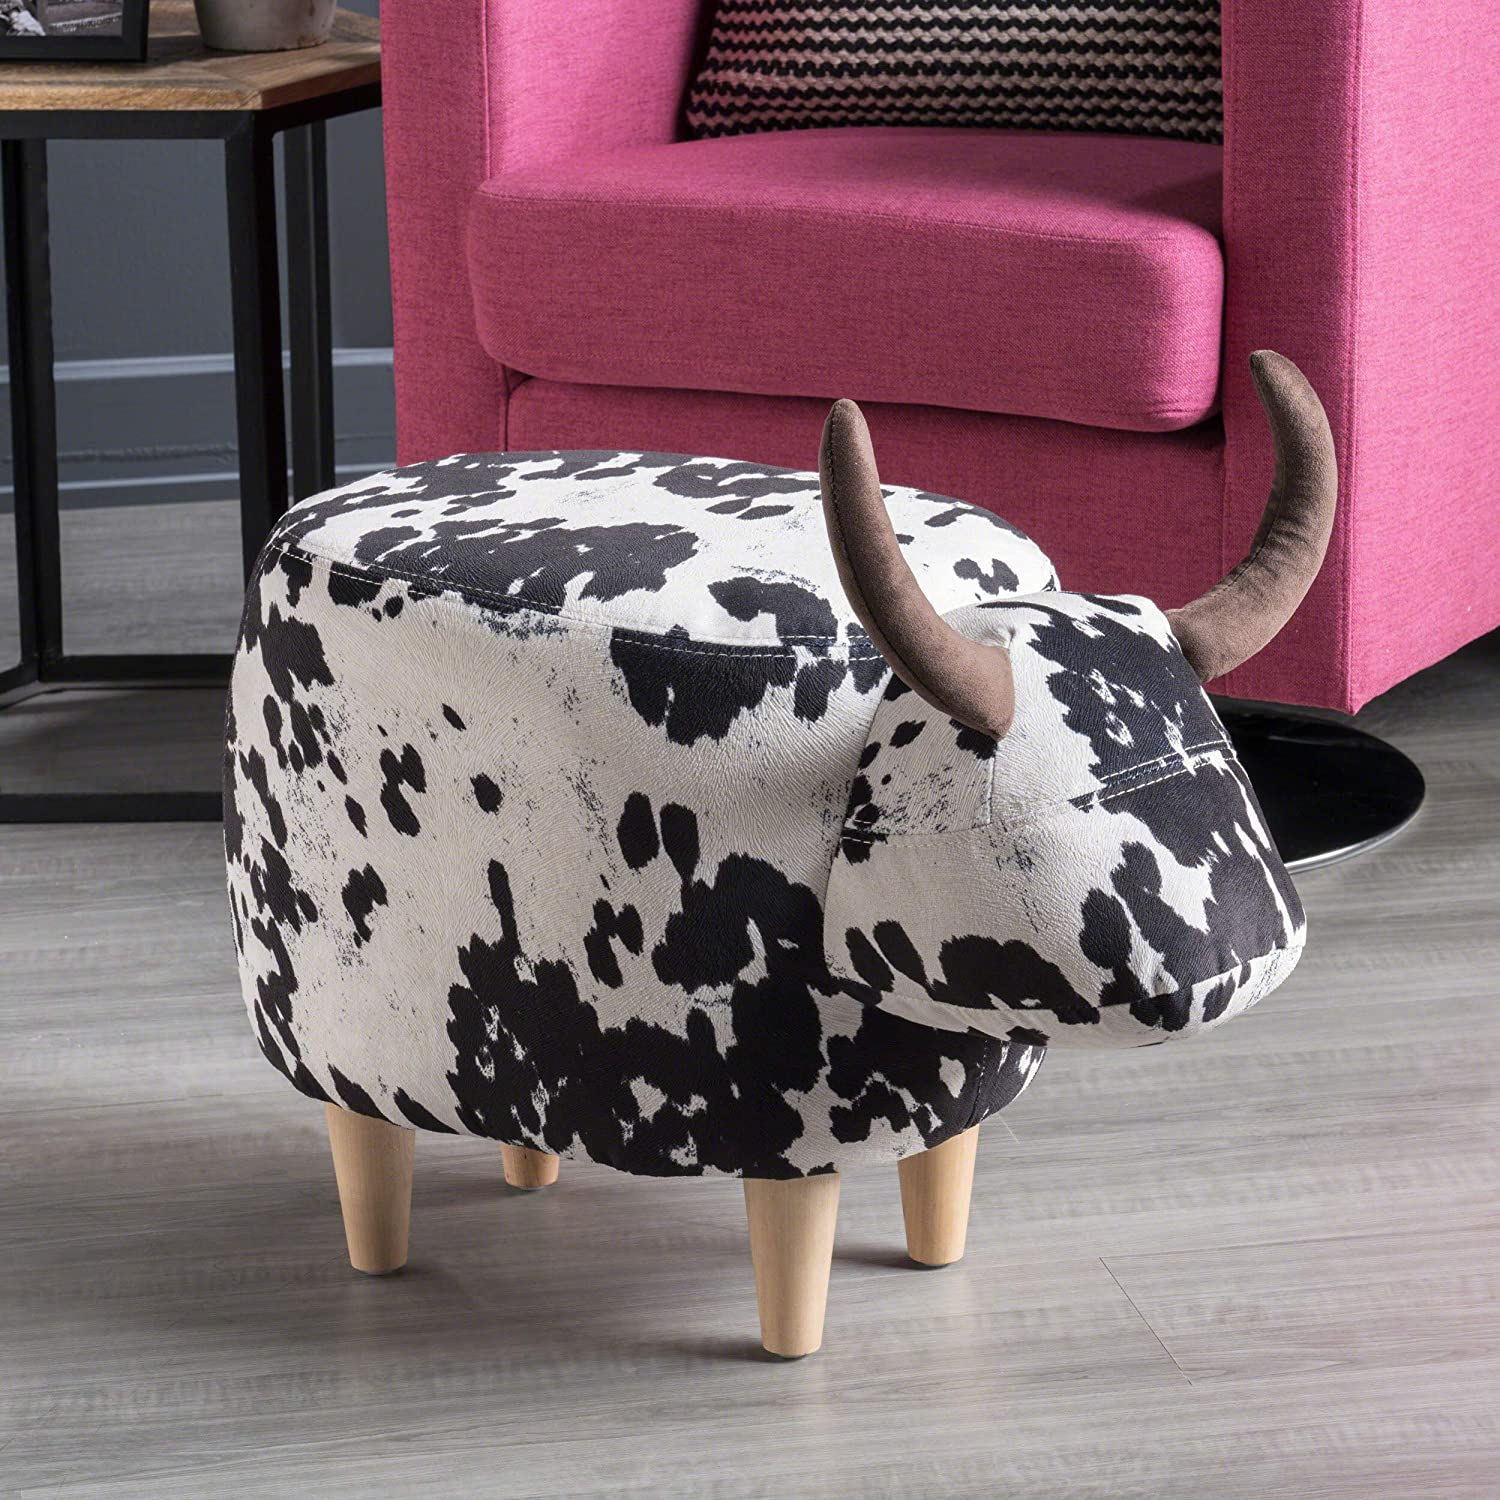 Christopher Knight Home 302161 Bertha Ottoman, Black and White Cow